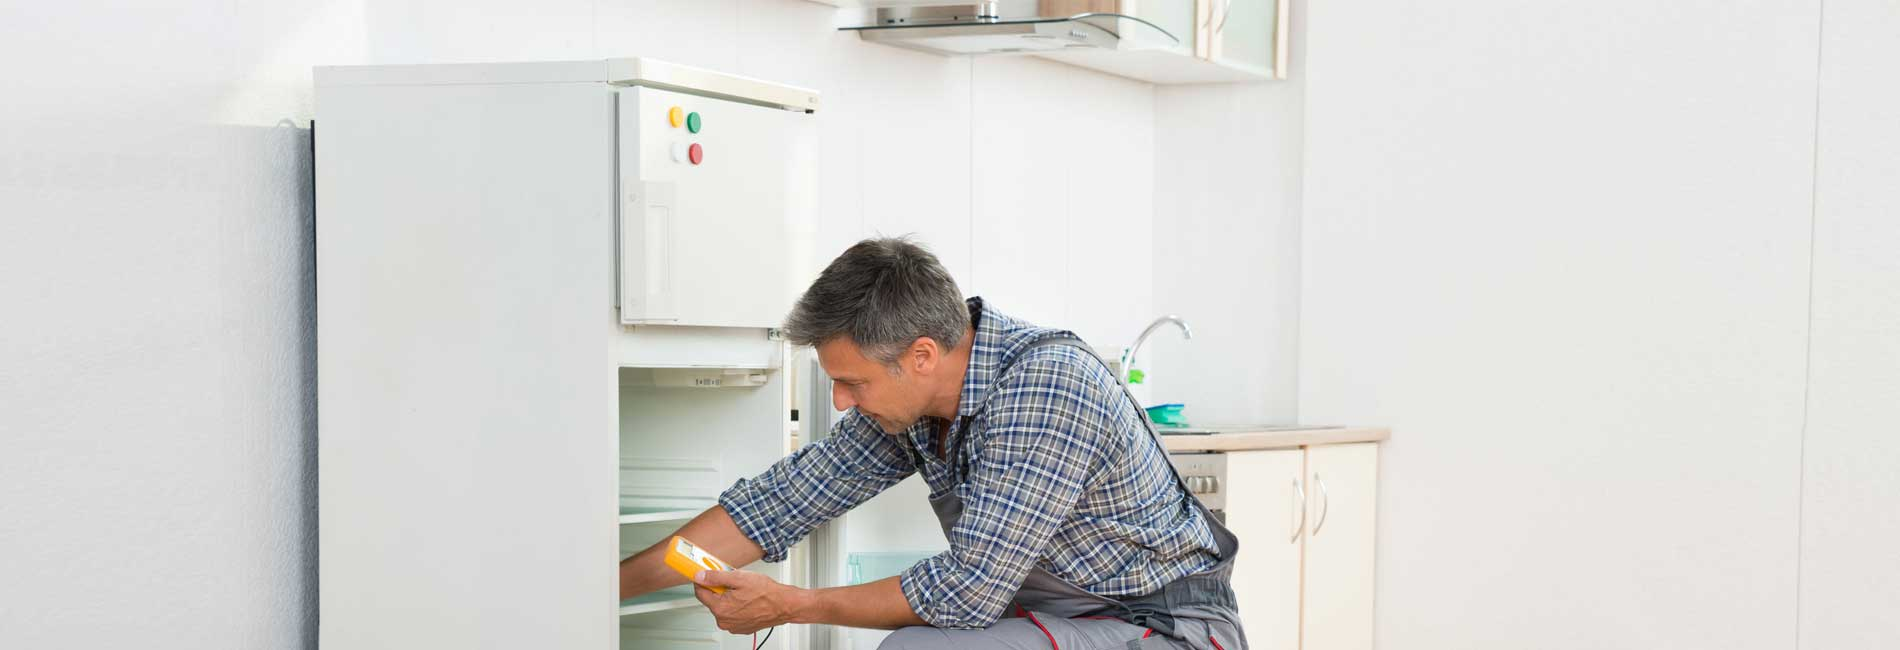 Refrigerator Repair in Nolambur